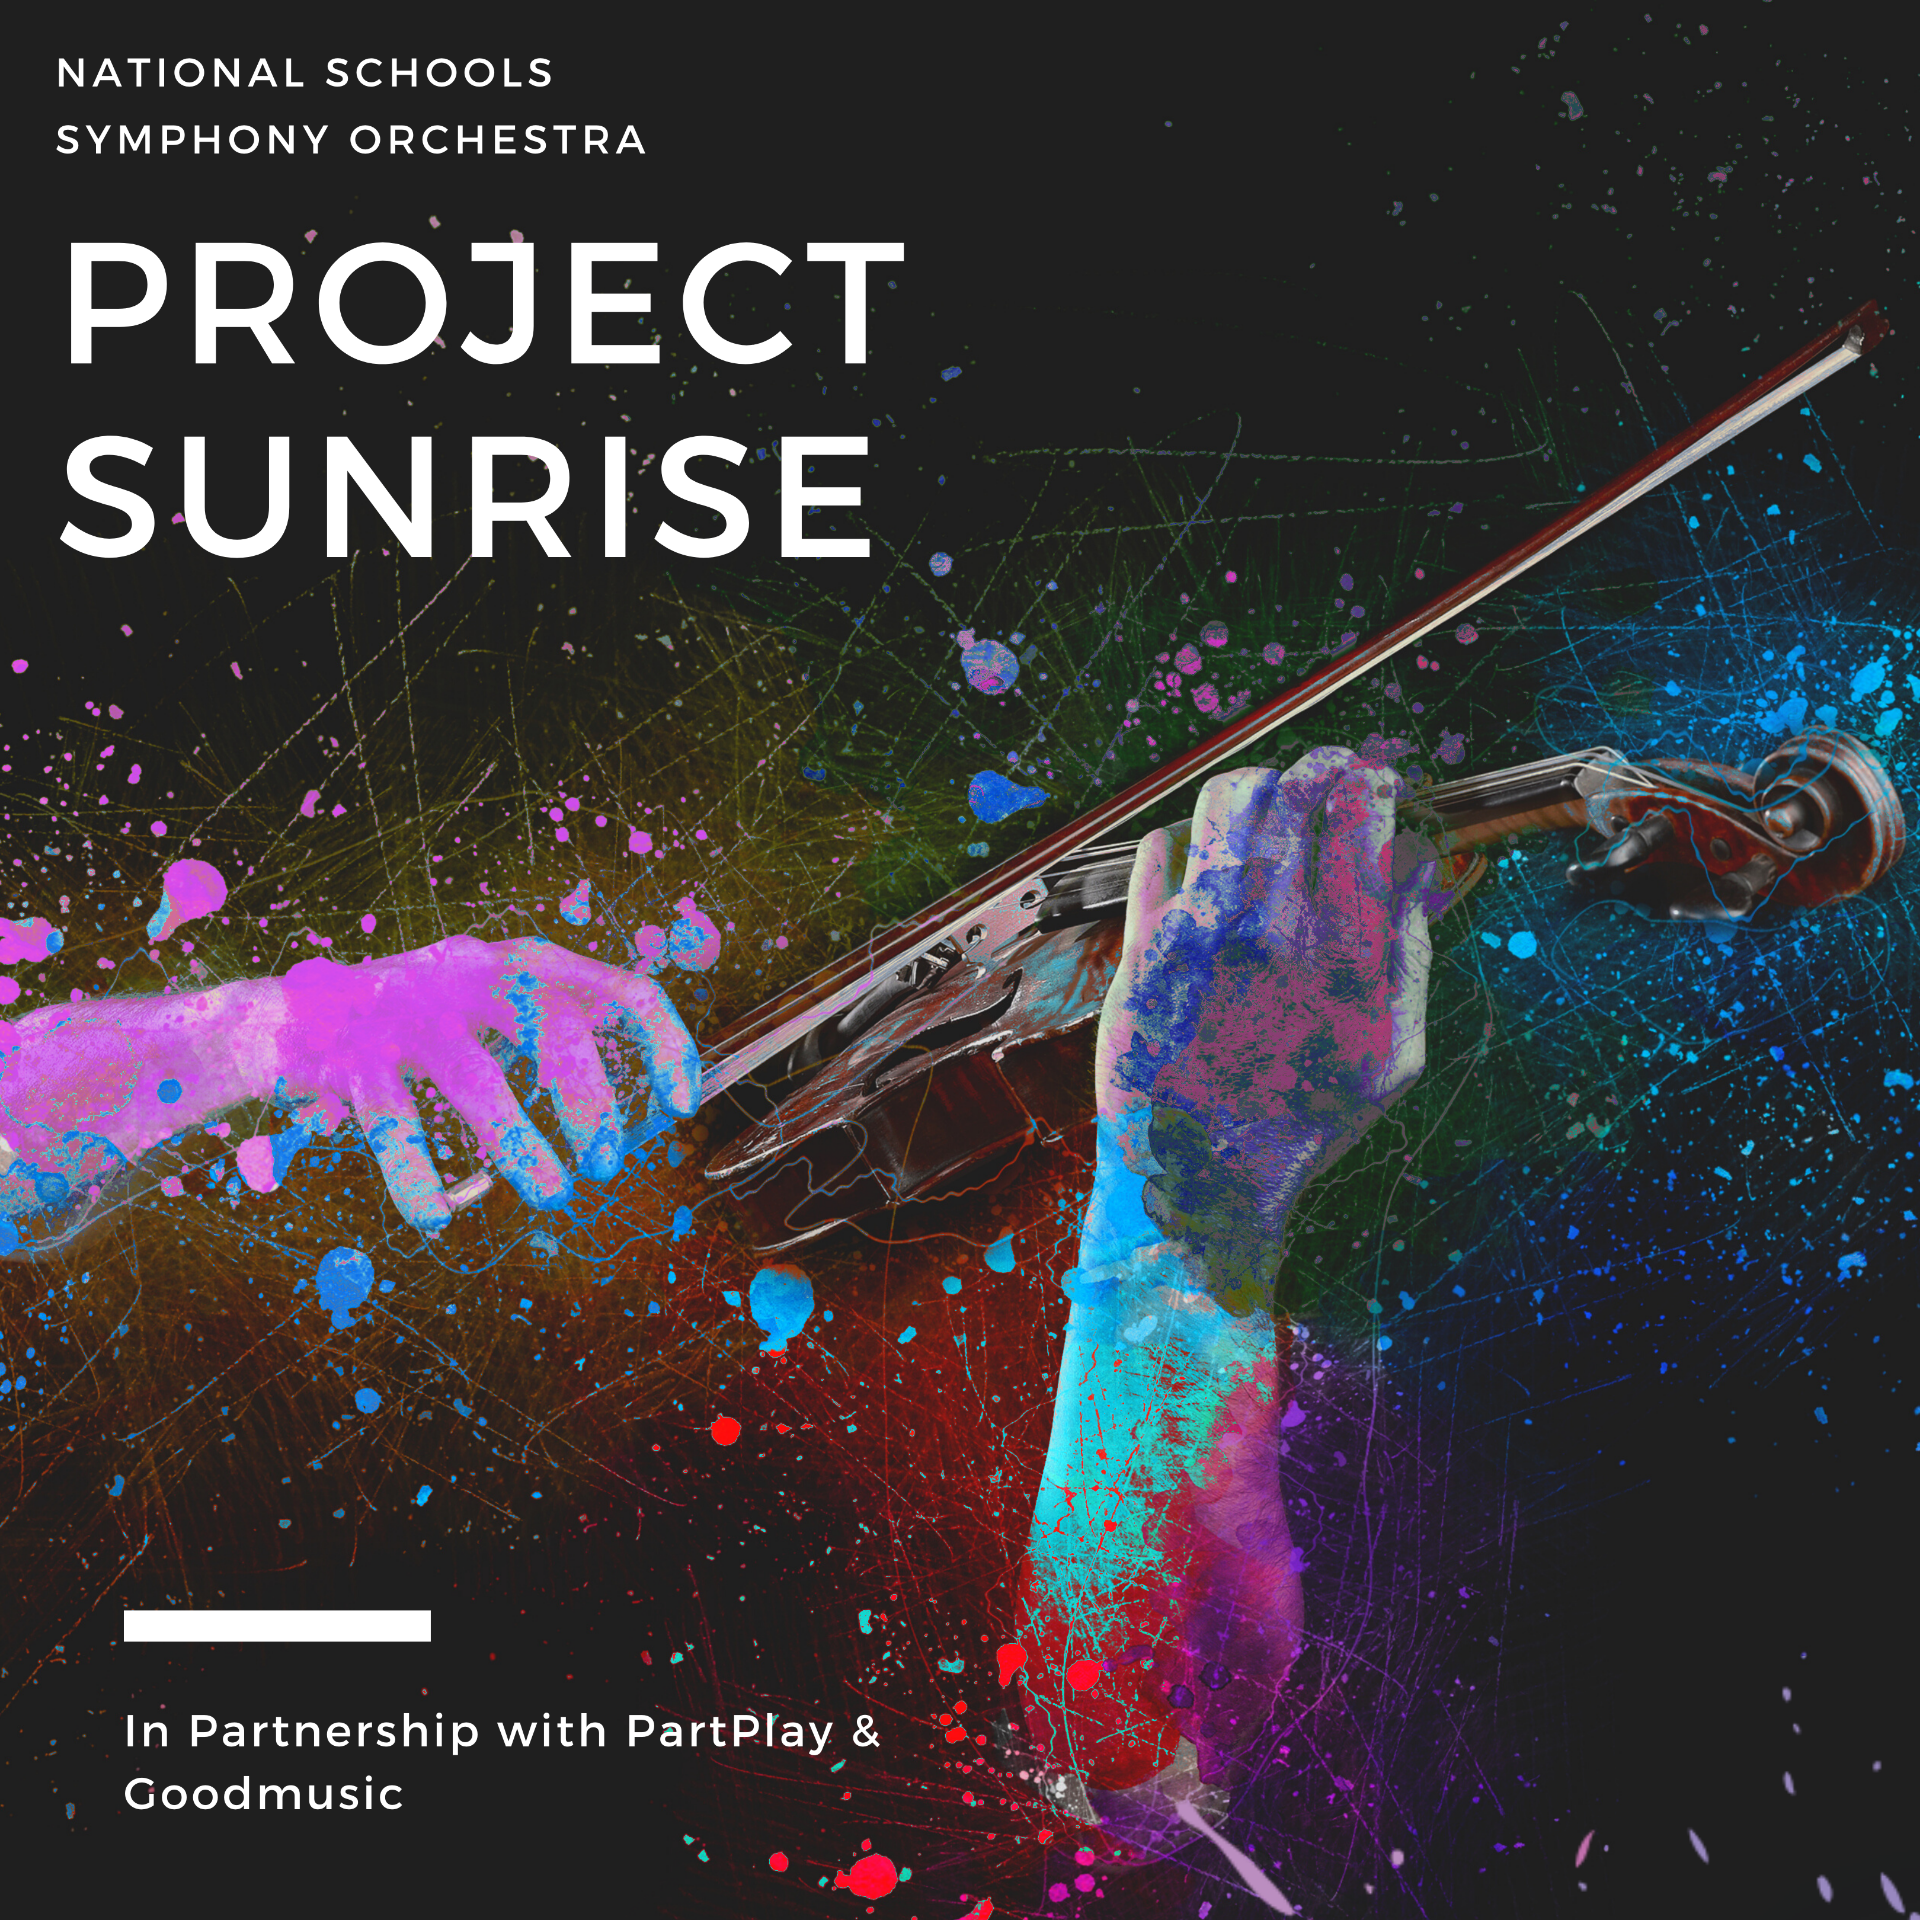 PROJECT SUNRISE AND THE FUTURE